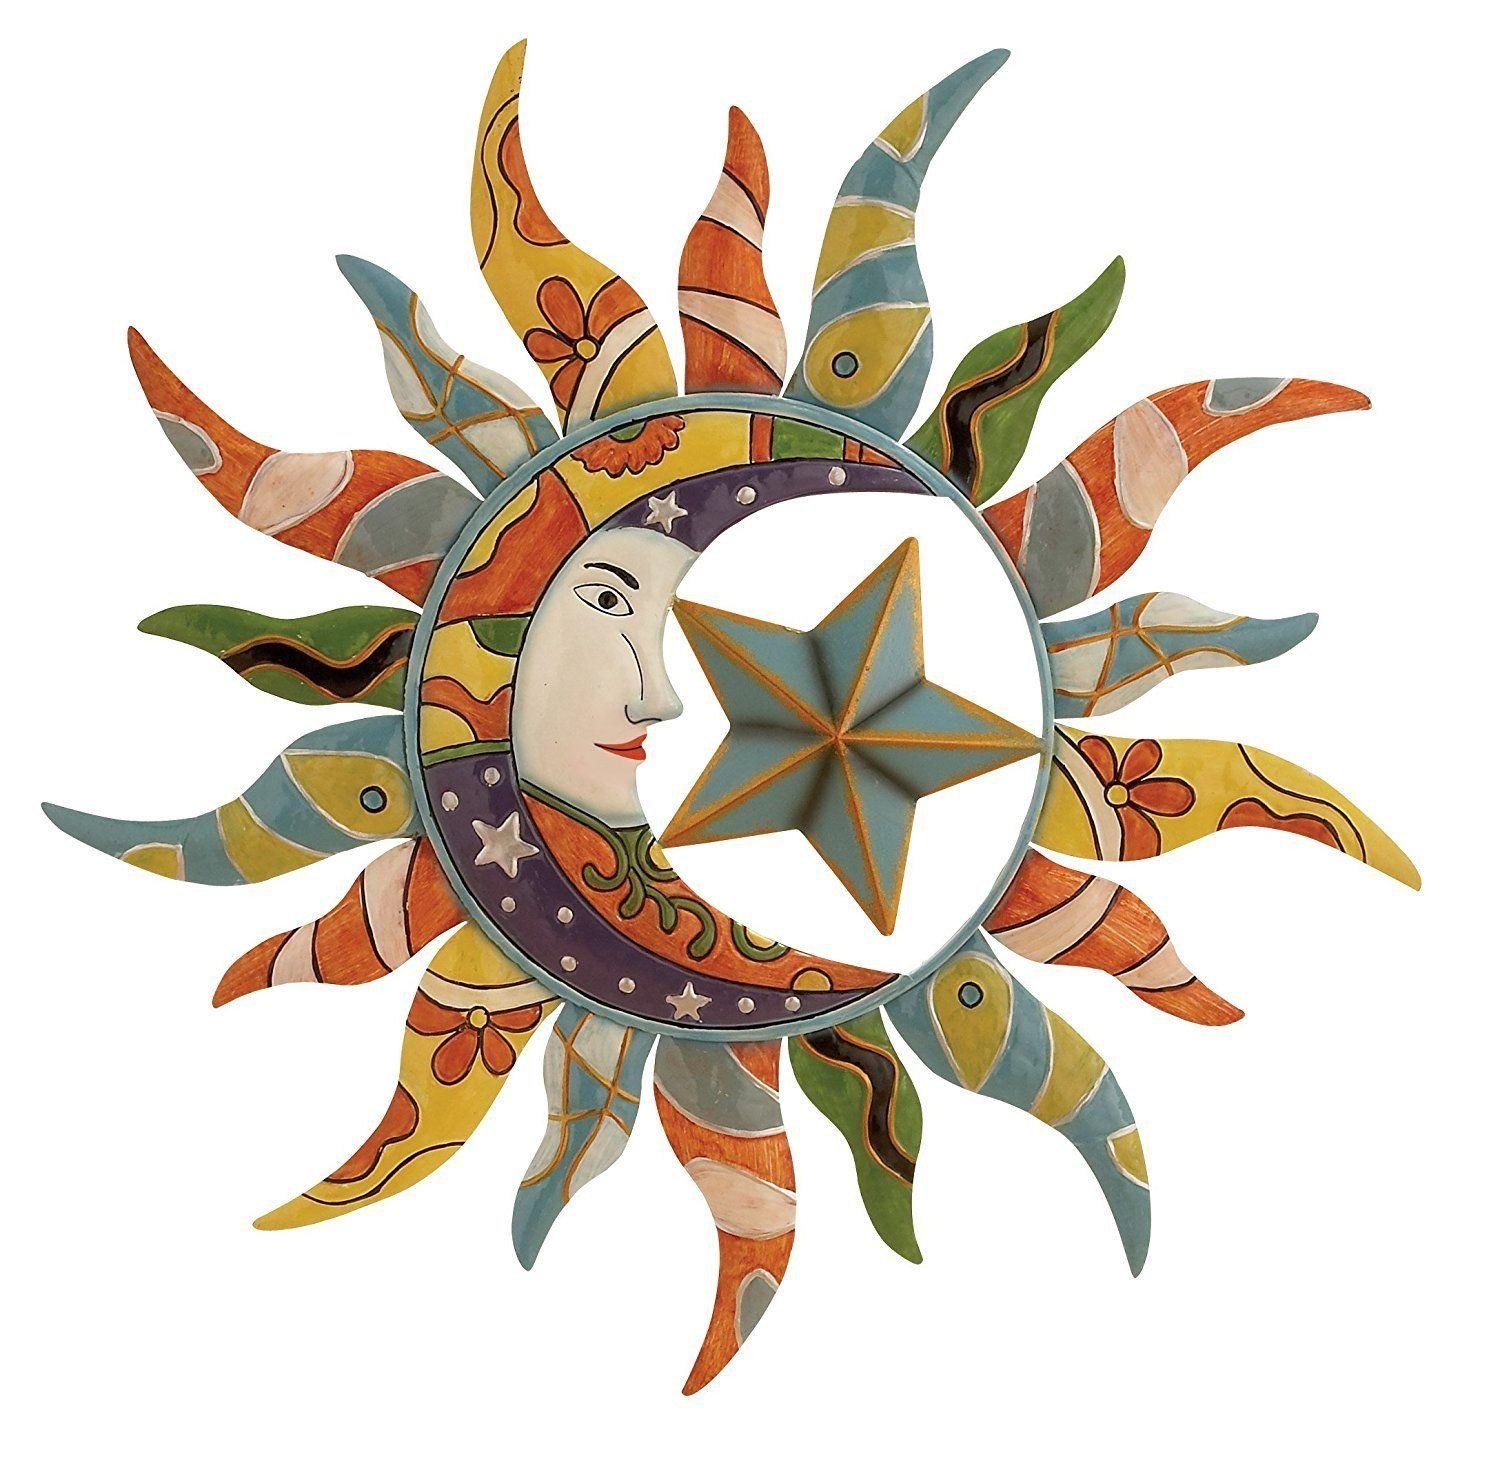 Metal Wall Art Mexican Moon Star Hanging Garden Decor Home Indoor In Mexican Metal Wall Art (Image 9 of 20)